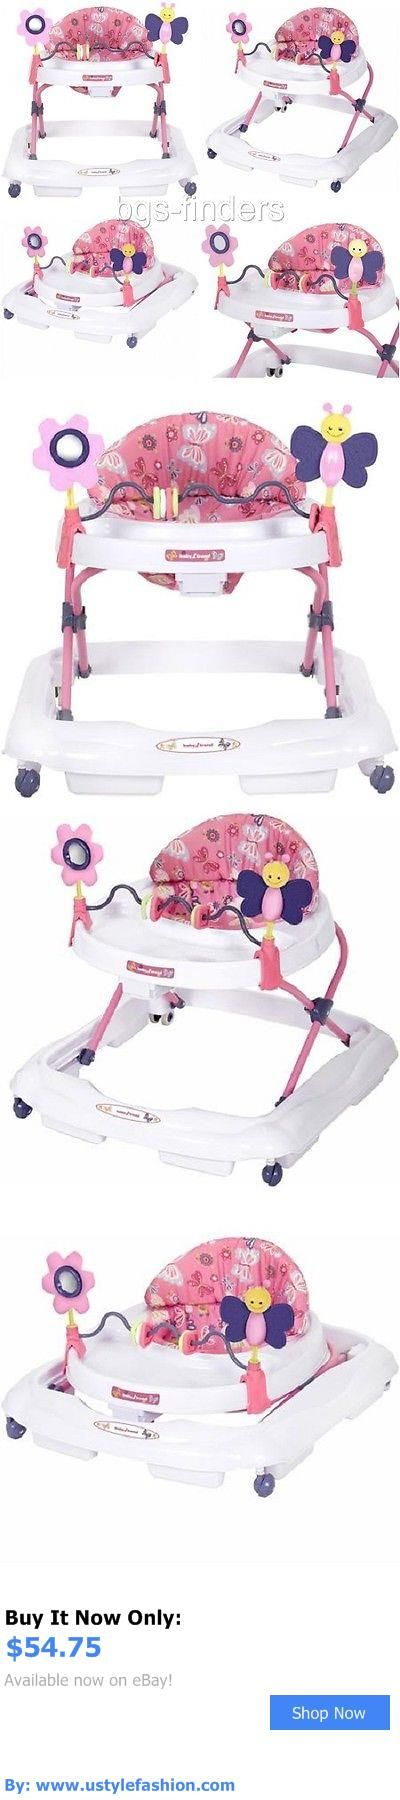 Baby walkers: Baby Walker Activity Toddler Walk Assistant Learning Jumper Toy Infant Kid New BUY IT NOW ONLY: $54.75 #ustylefashionBabywalkers OR #ustylefashion